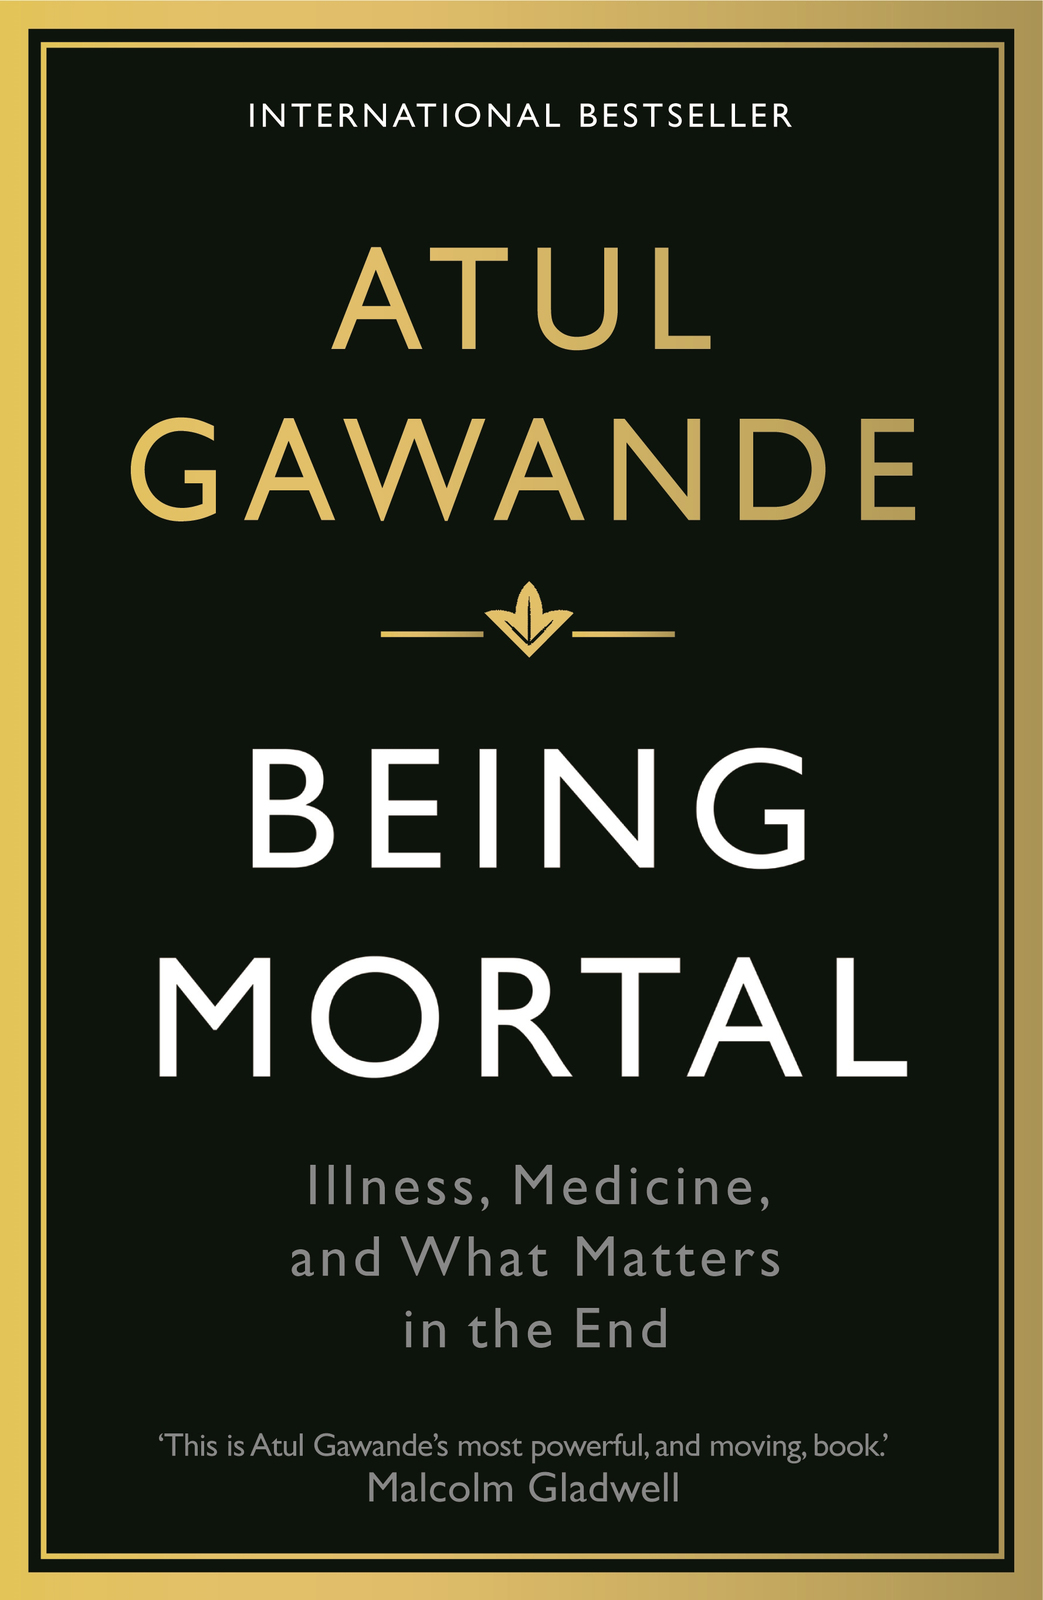 Being Mortal by Atul Gawande image